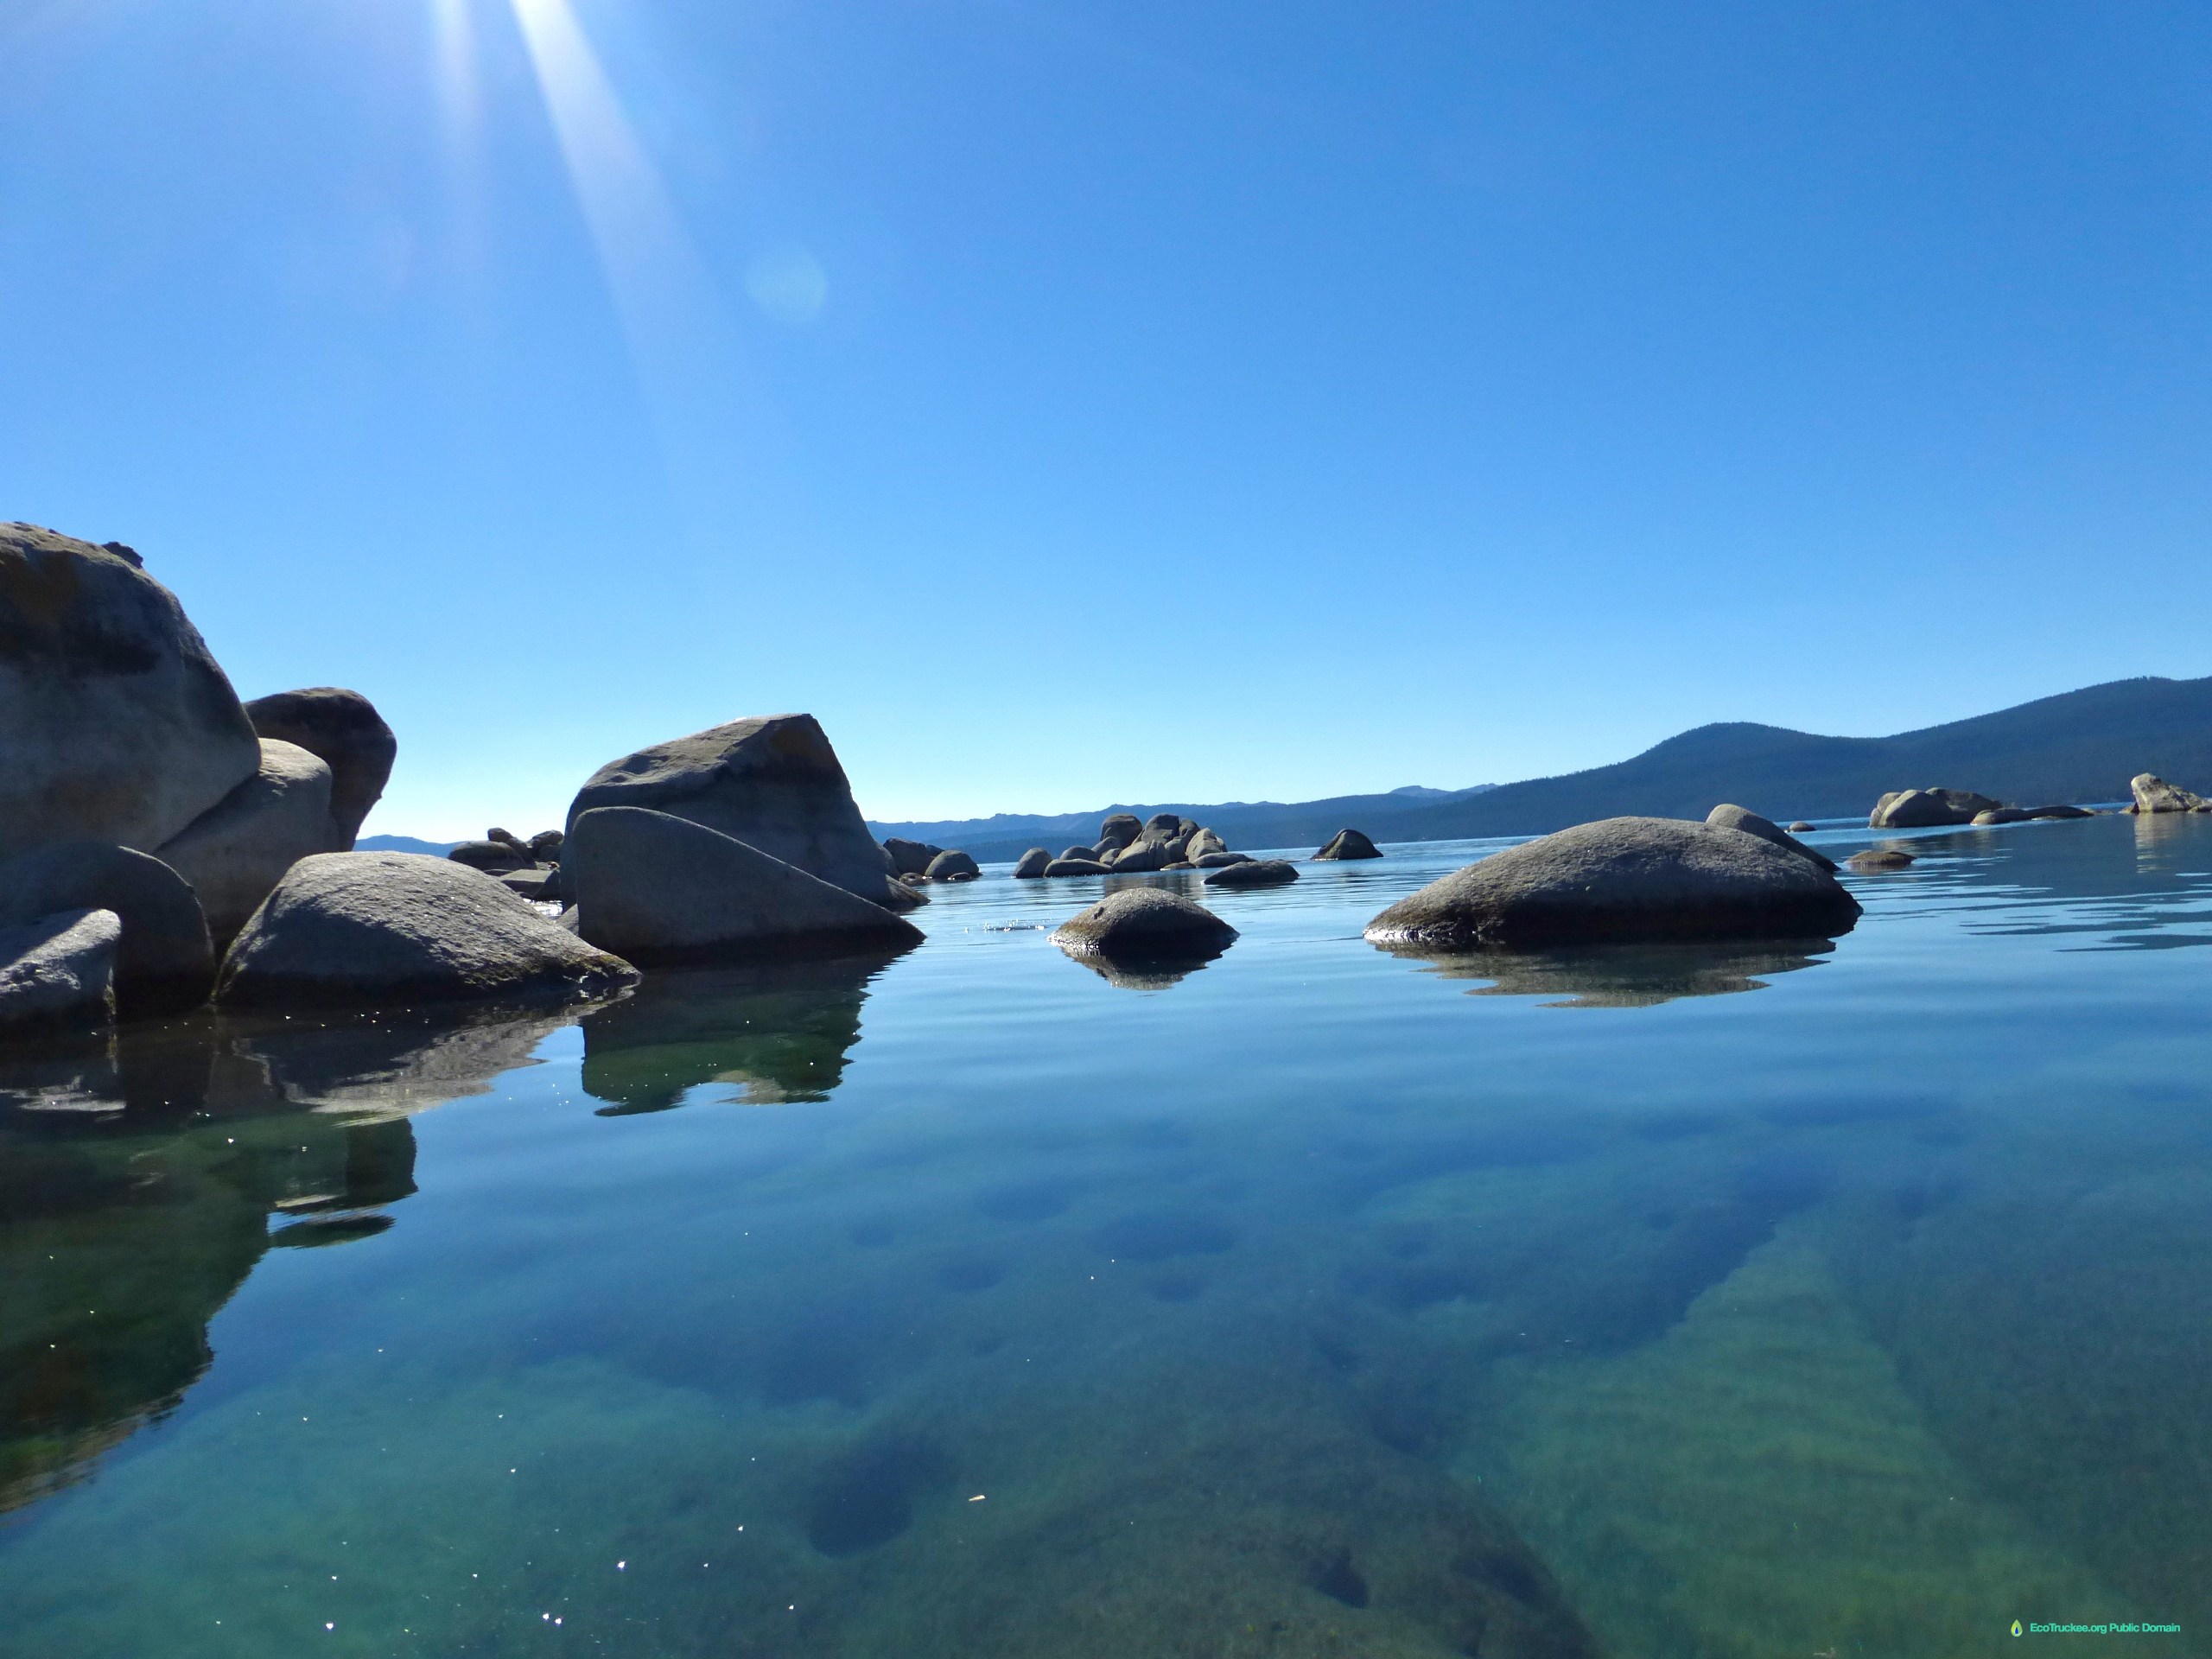 Lake Tahoe – Quiet Use